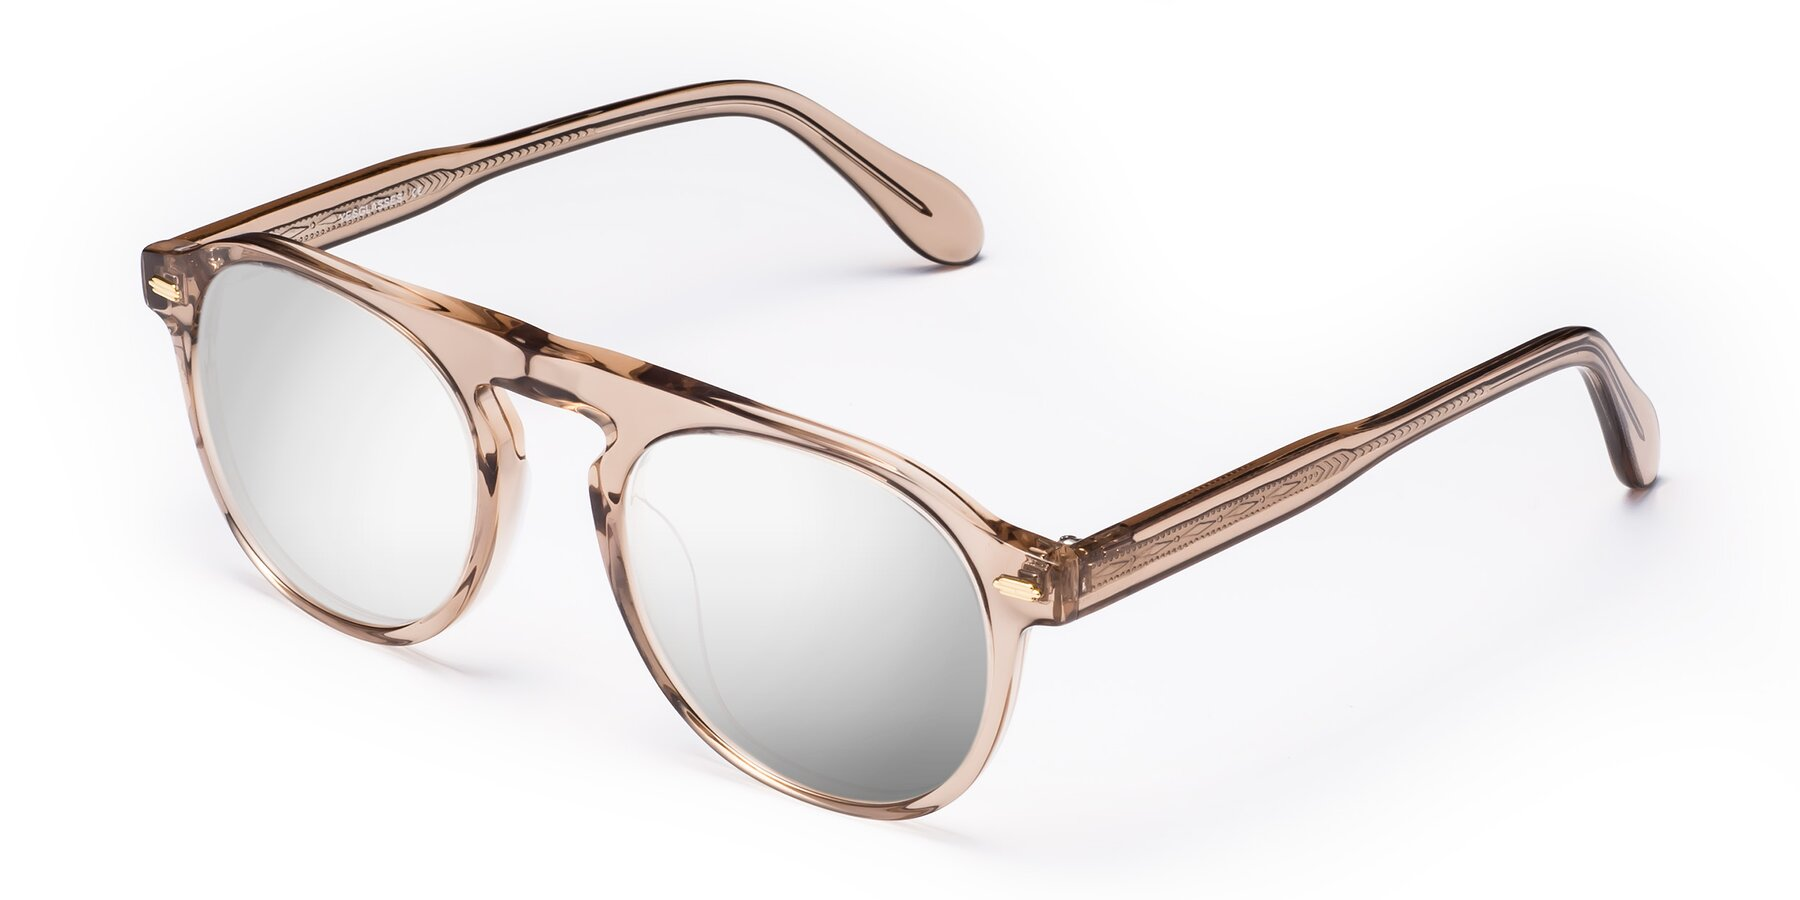 Angle of Mufasa in light Brown with Silver Mirrored Lenses